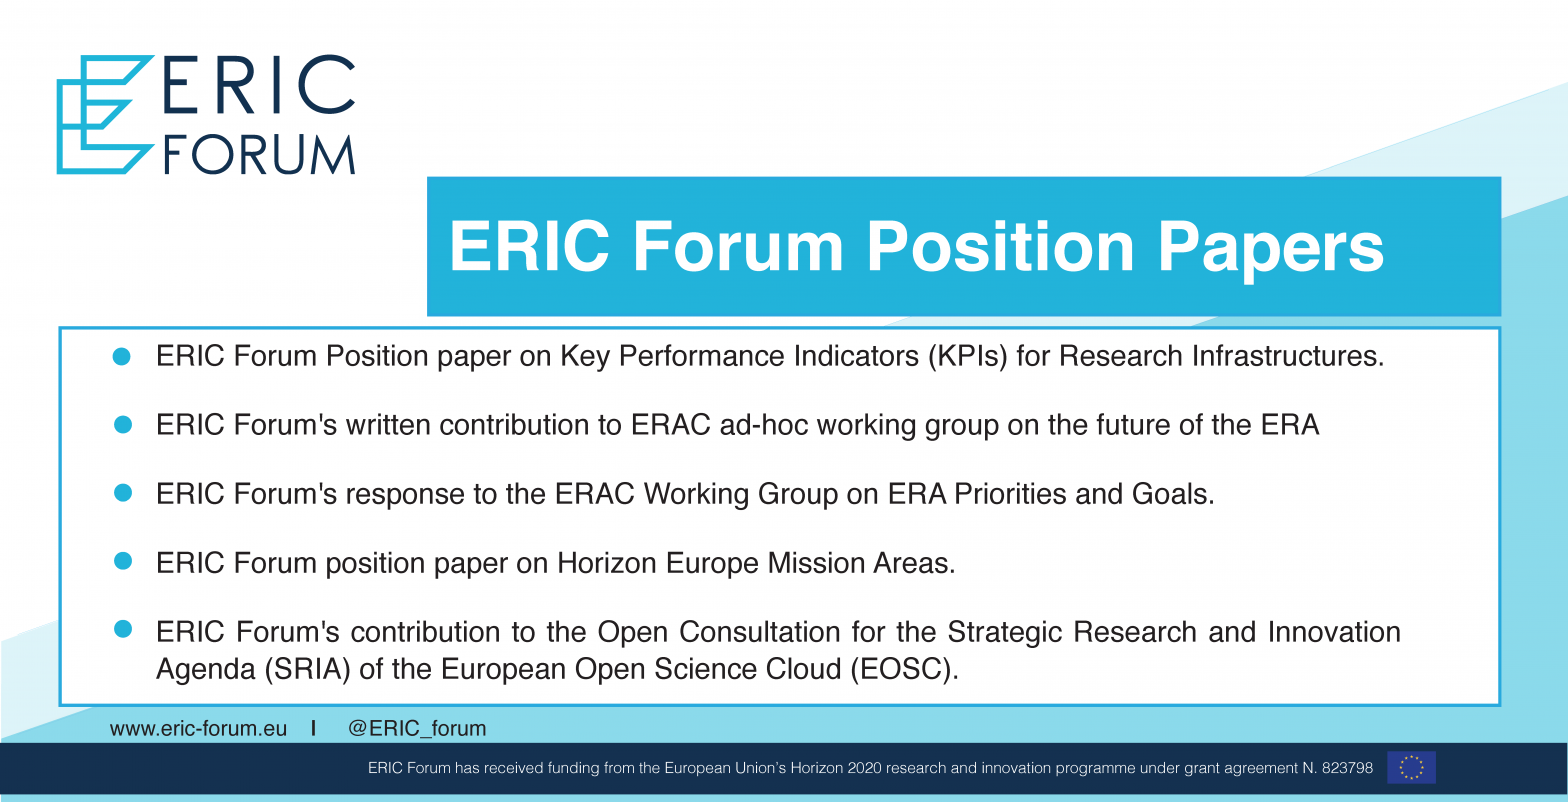 ERIC Forum Position Papers